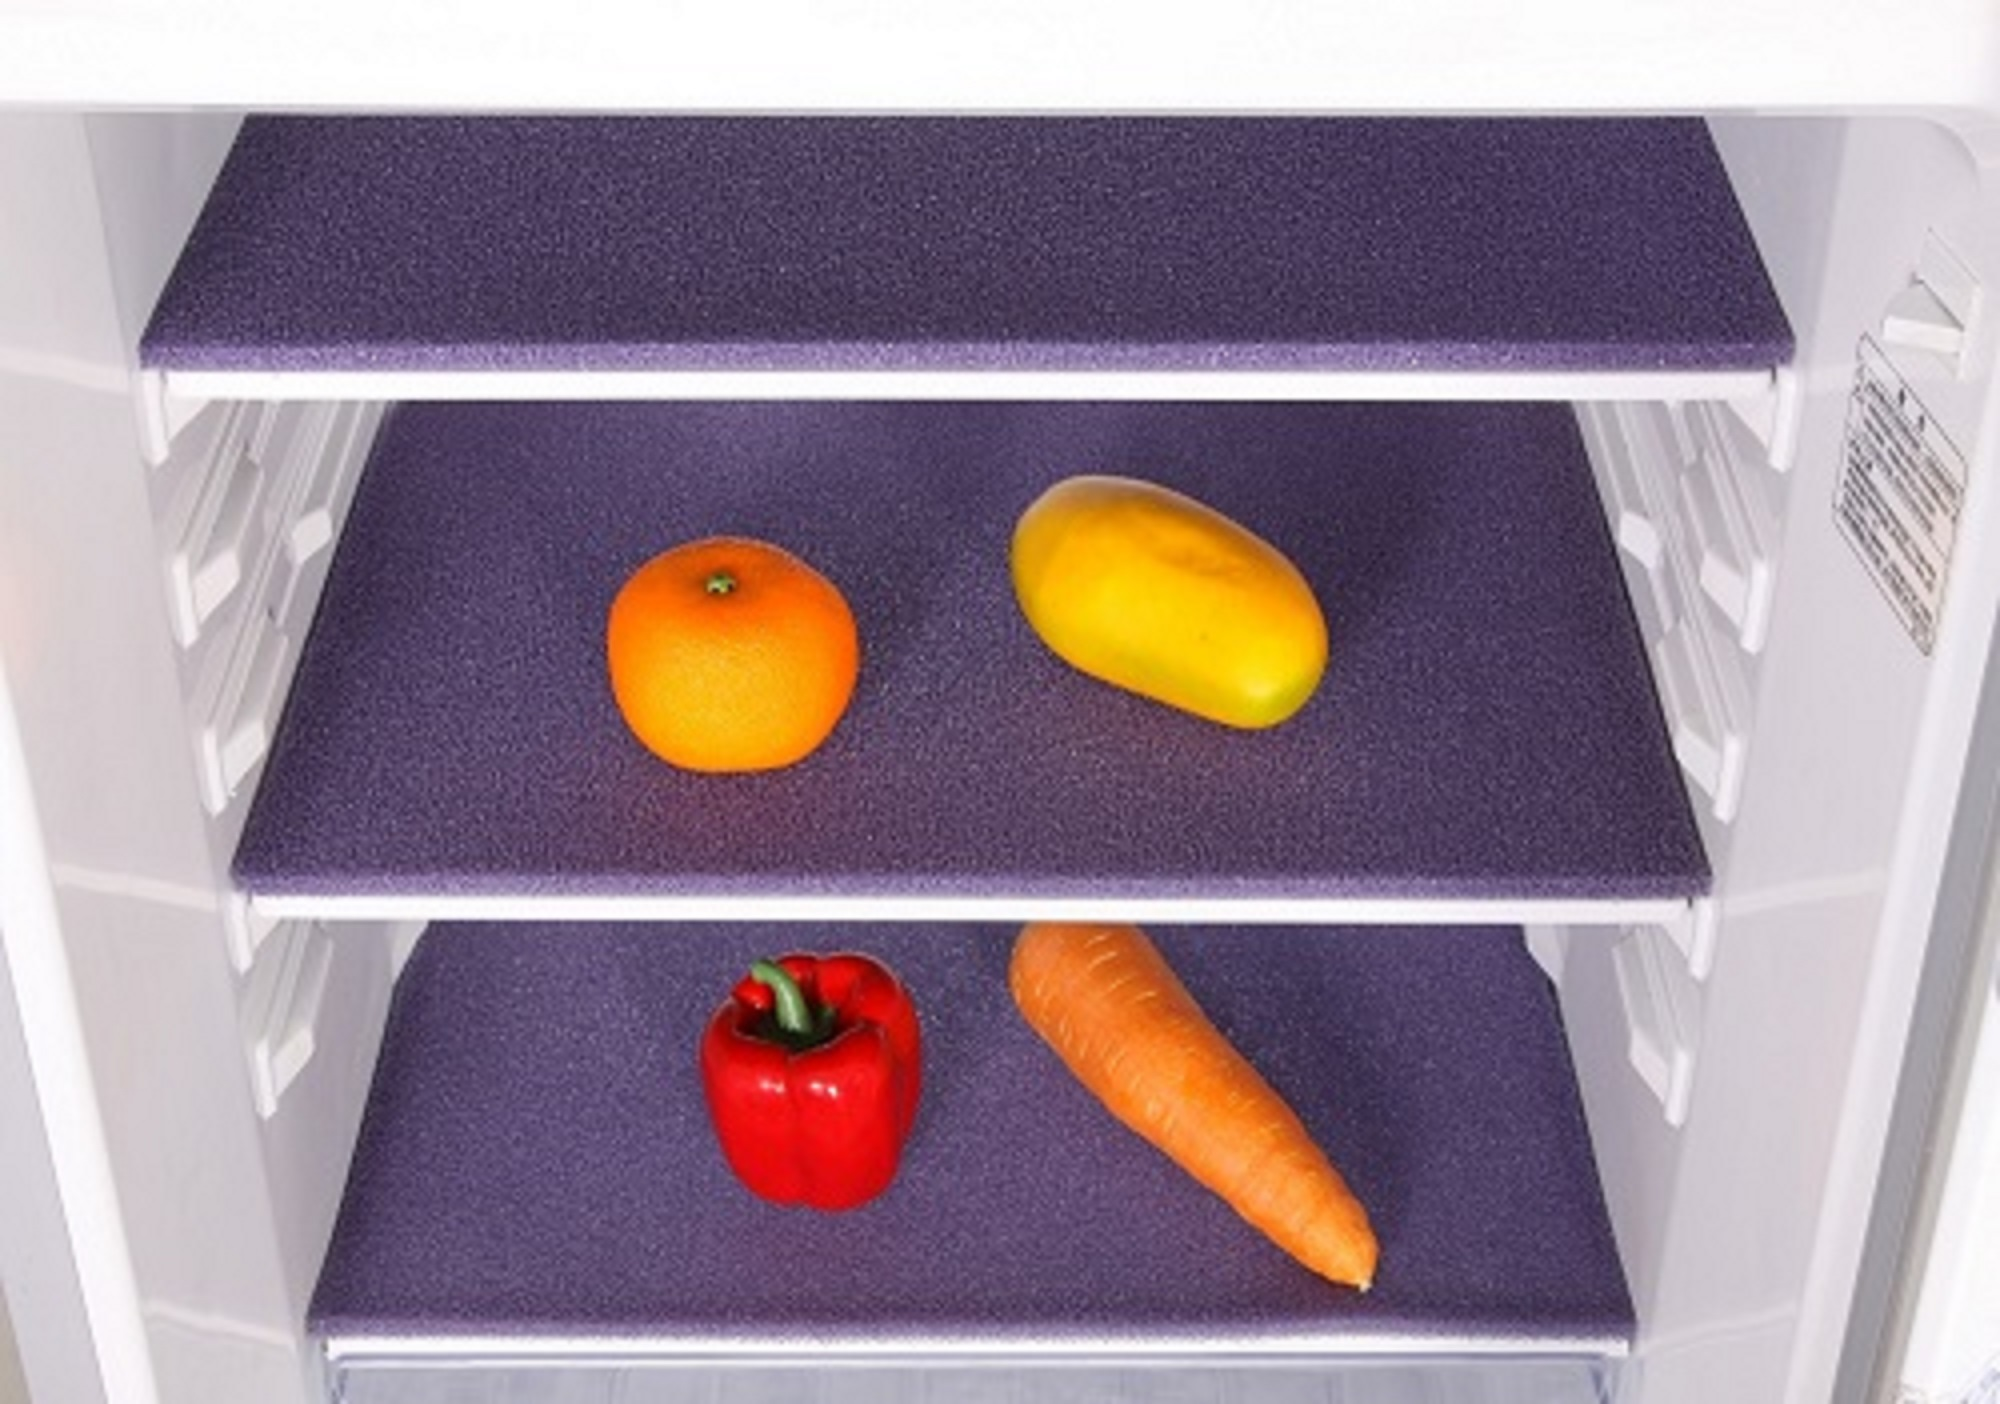 Elfin 18.5x11.8 Inches Silicone Washable Durable Anti-mould Fruit Life Extender Shelf Liner(Purple)